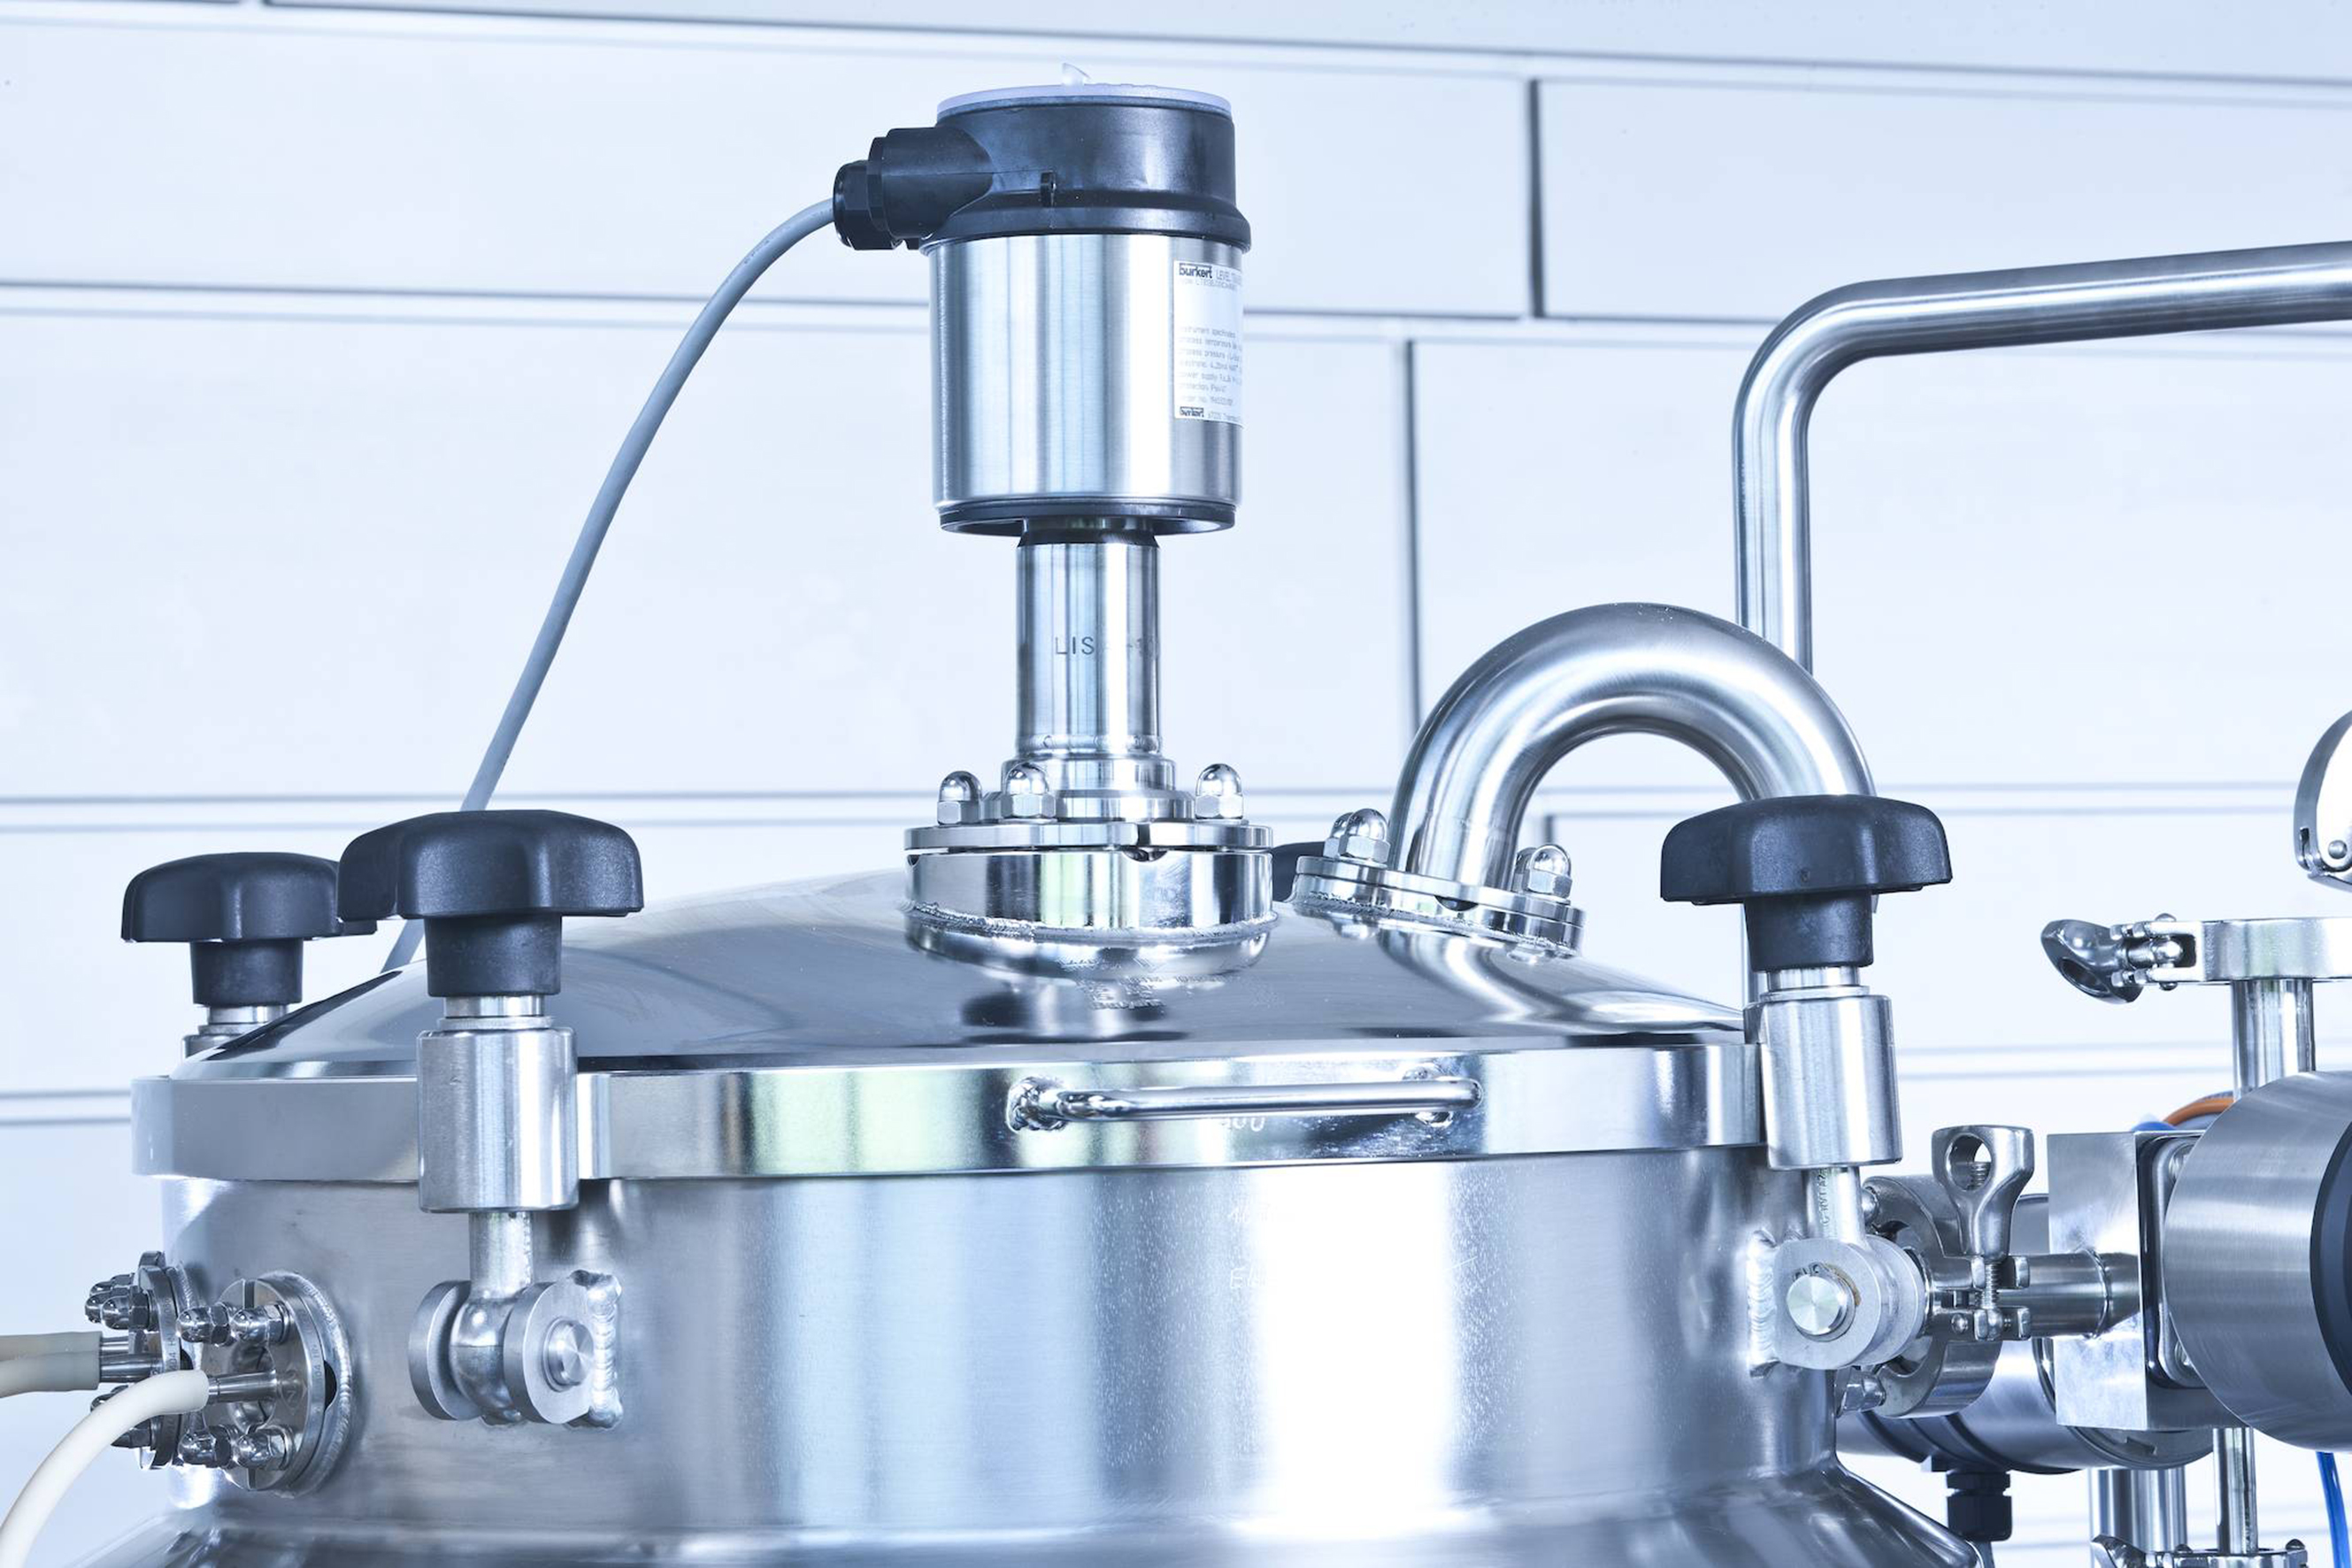 Optimum level and flow control for food industry processes